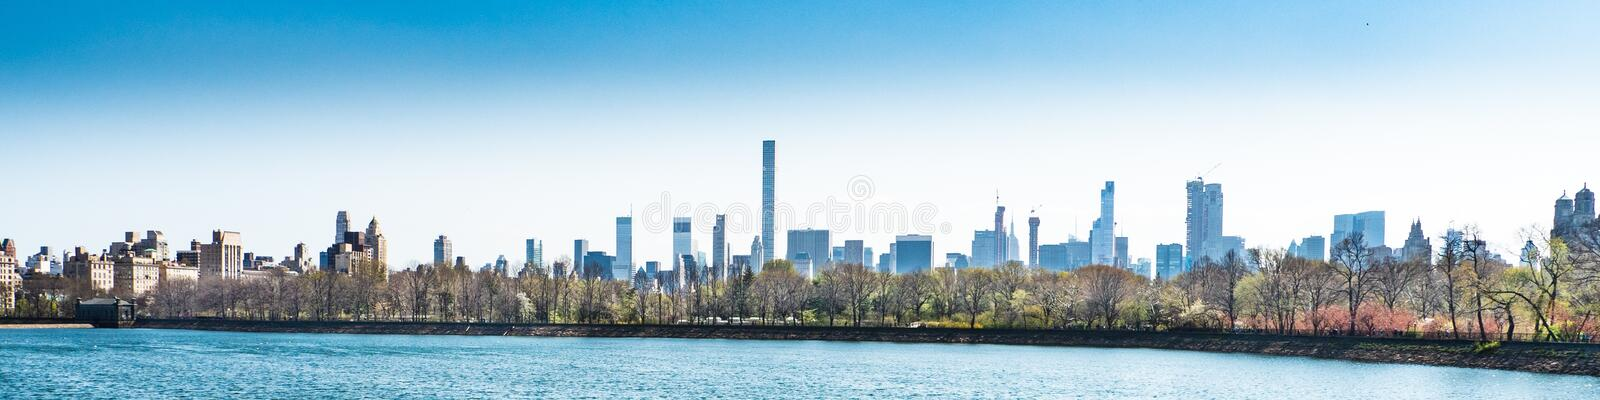 Water, Skyline, Sky, Daytime royalty free stock images